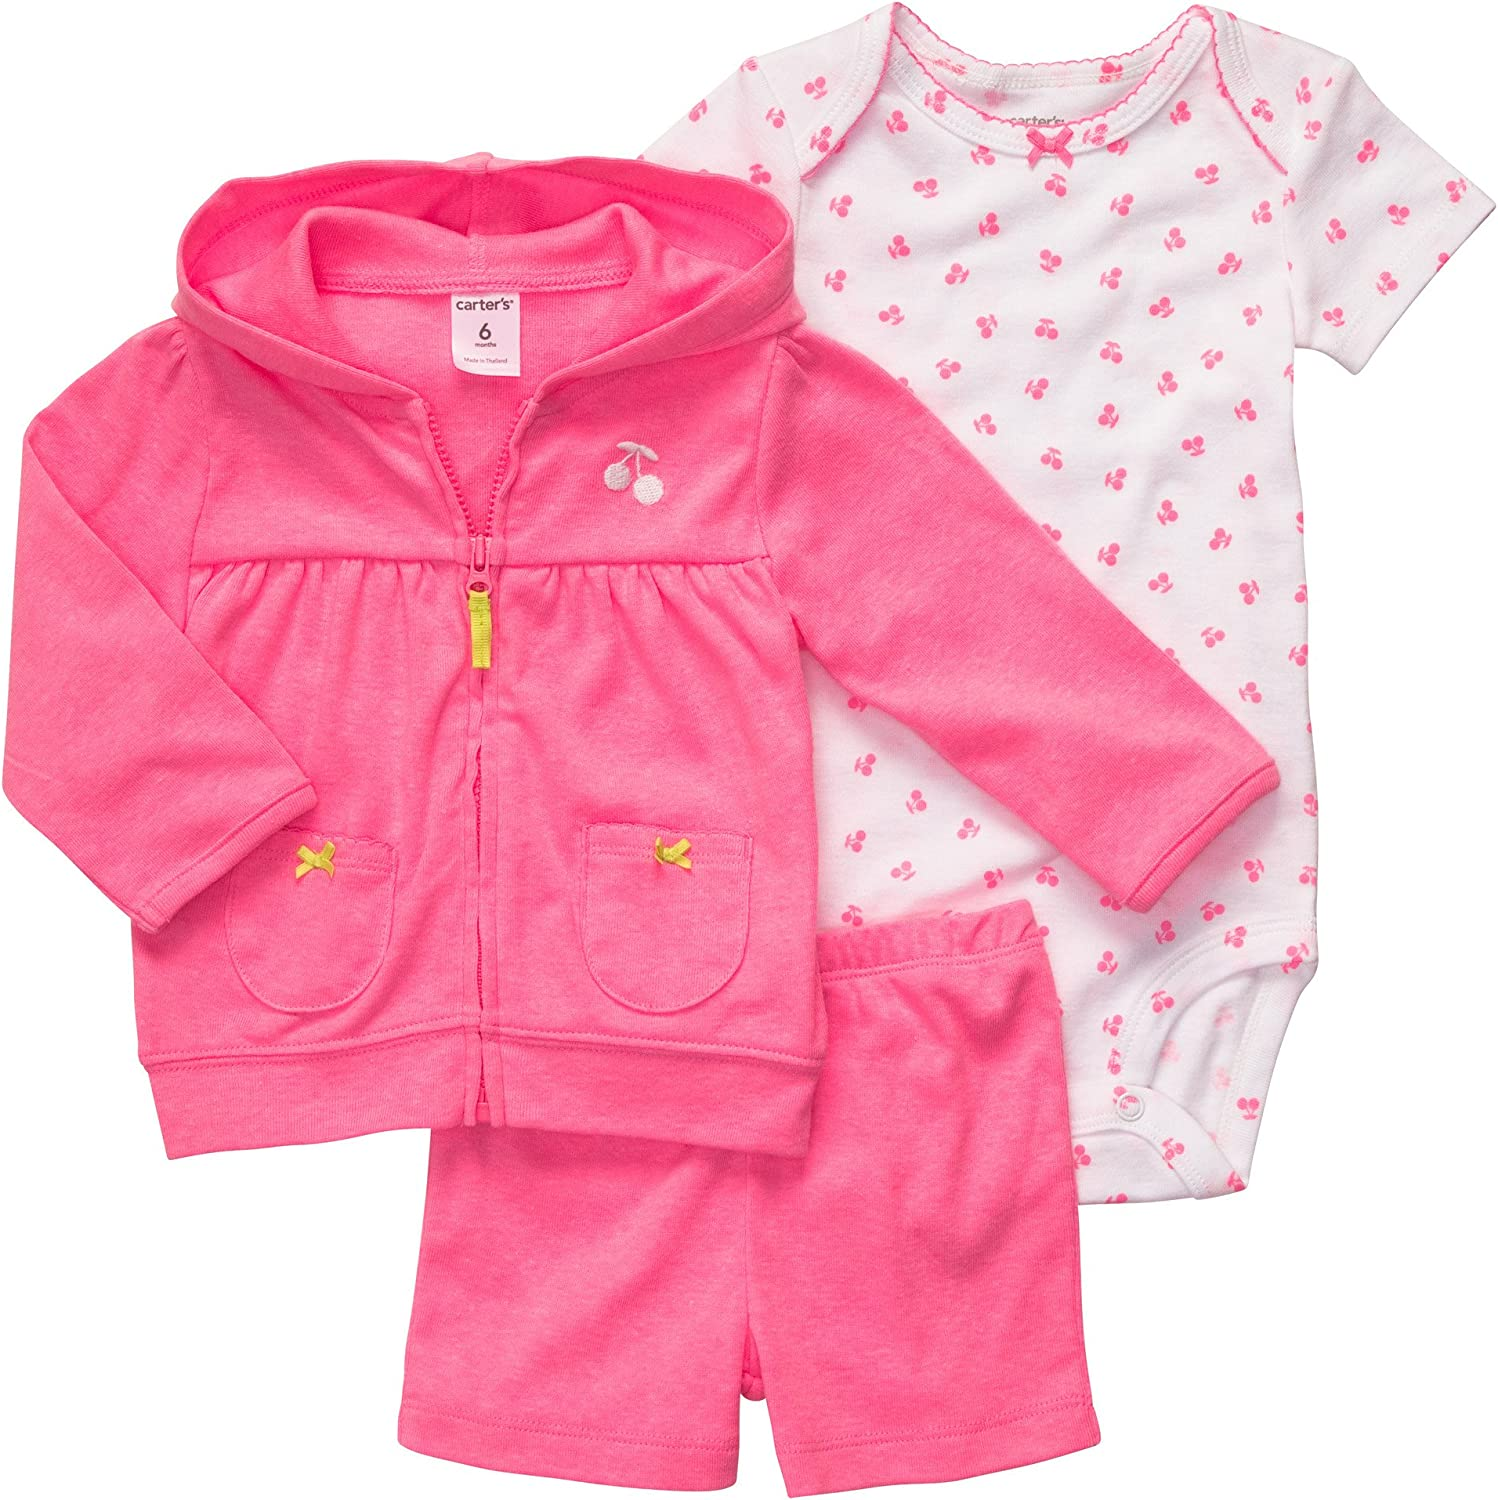 Carter's Pink Cherry Blossom Little Layette Short Mo 4 years warranty 3 Set Courier shipping free Size